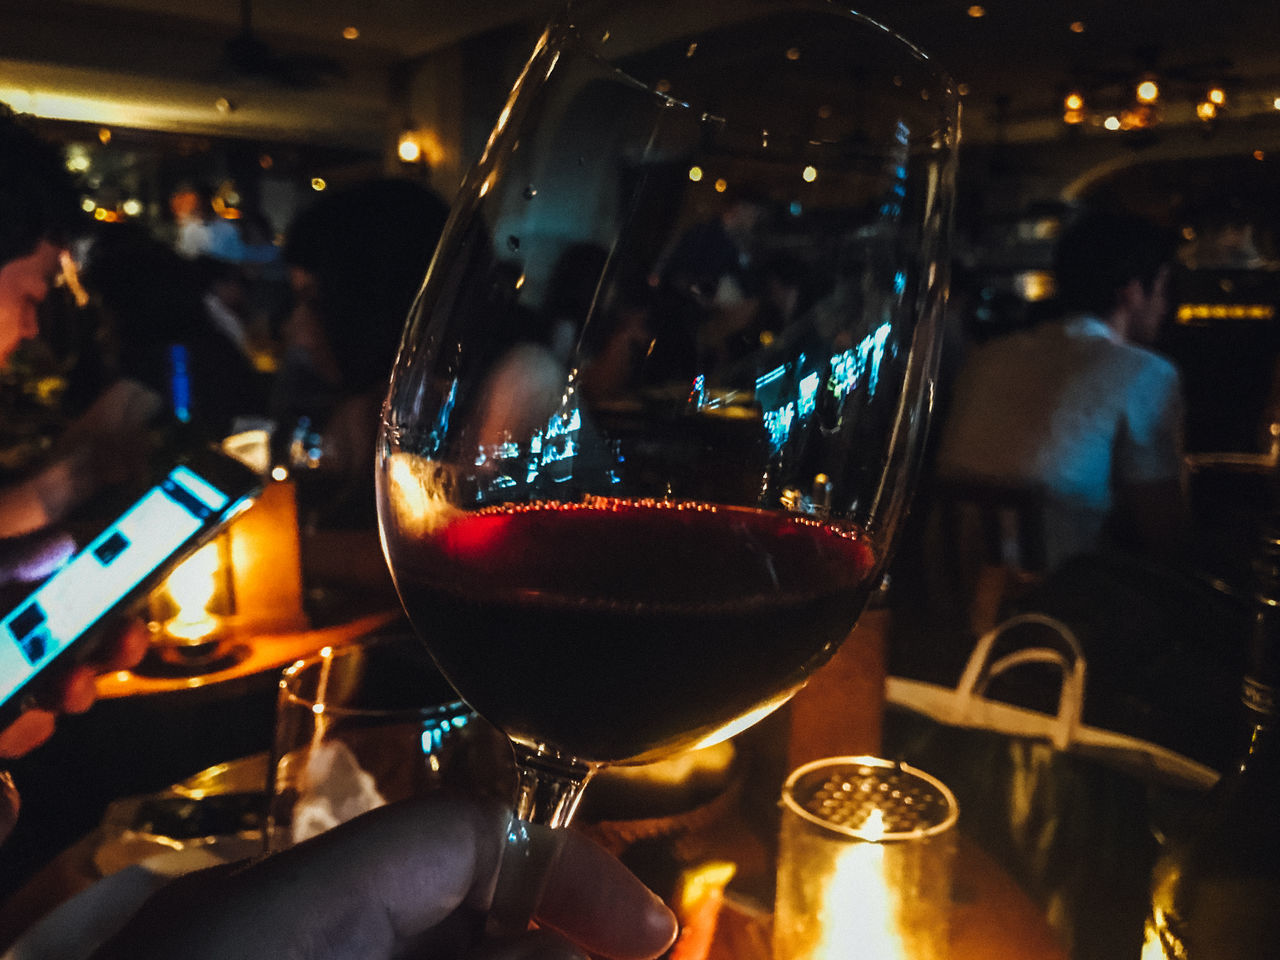 wineglass, real people, human hand, wine, night, alcohol, food and drink, drink, restaurant, human body part, two people, refreshment, illuminated, focus on foreground, men, indoors, red wine, holding, women, celebration, lifestyles, close-up, drinking glass, togetherness, freshness, food, adult, people